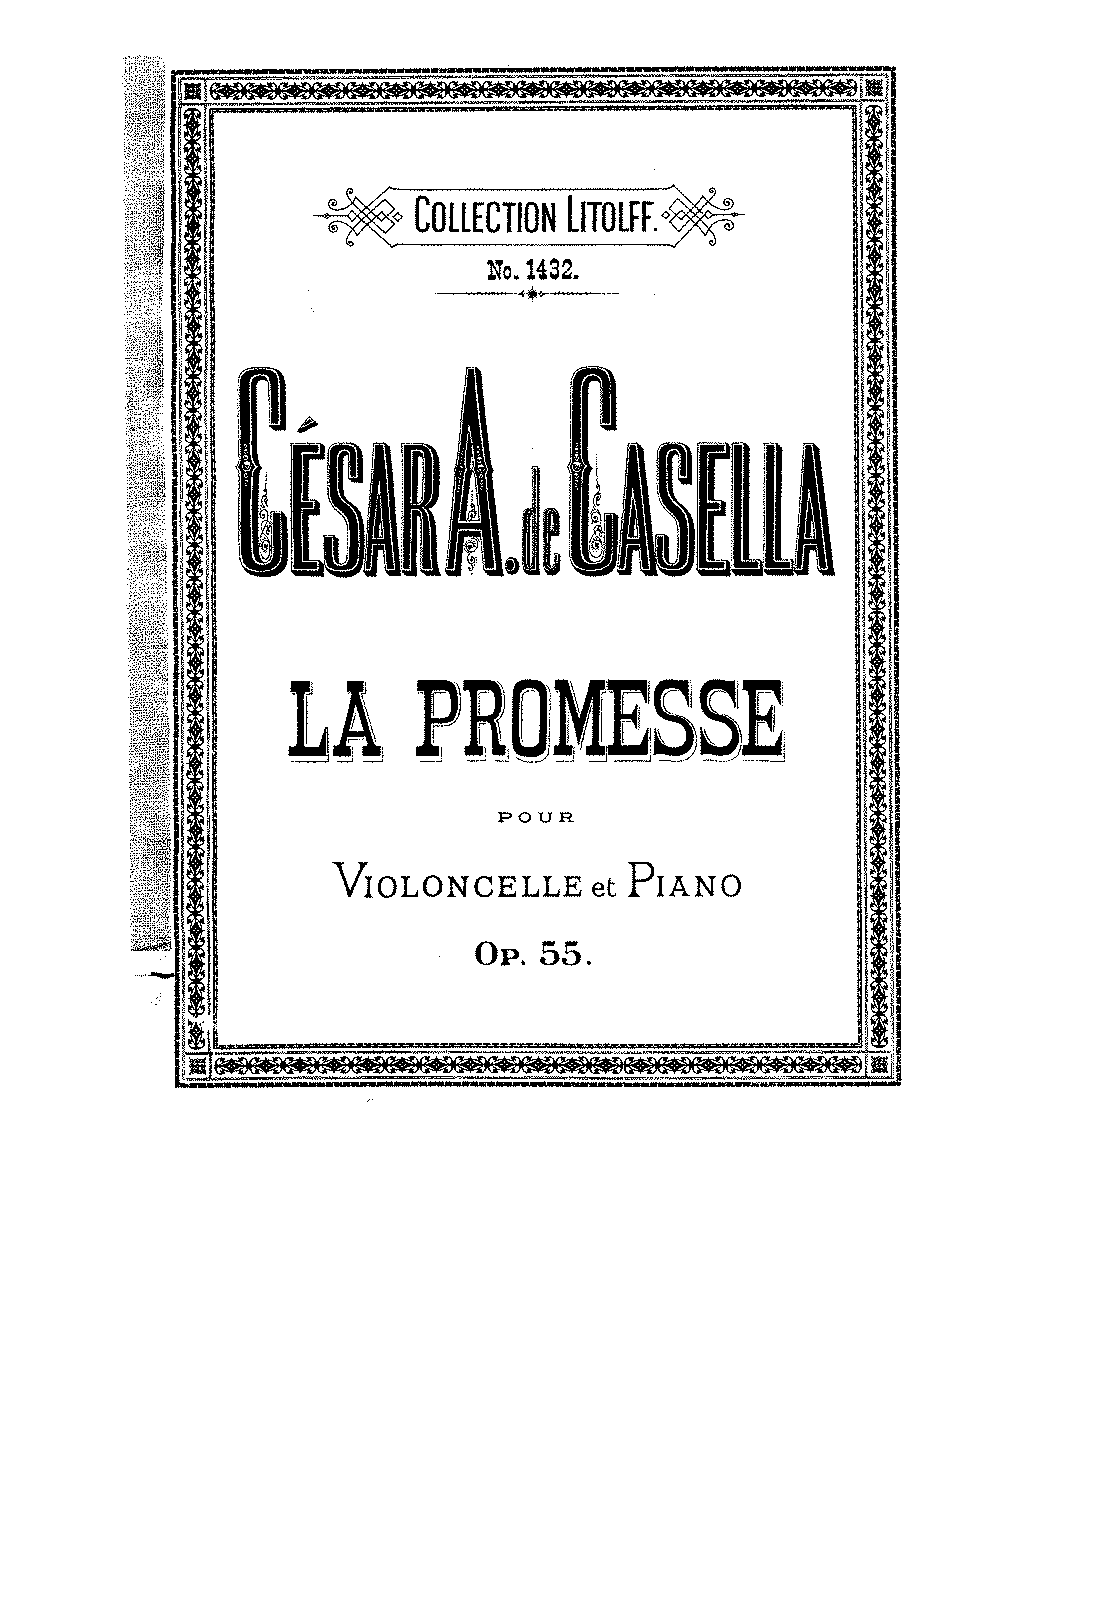 PMLP135994-Casella - La Promesse Serenade Dans le Style Oriental for Cello and Piano Op55 score.pdf